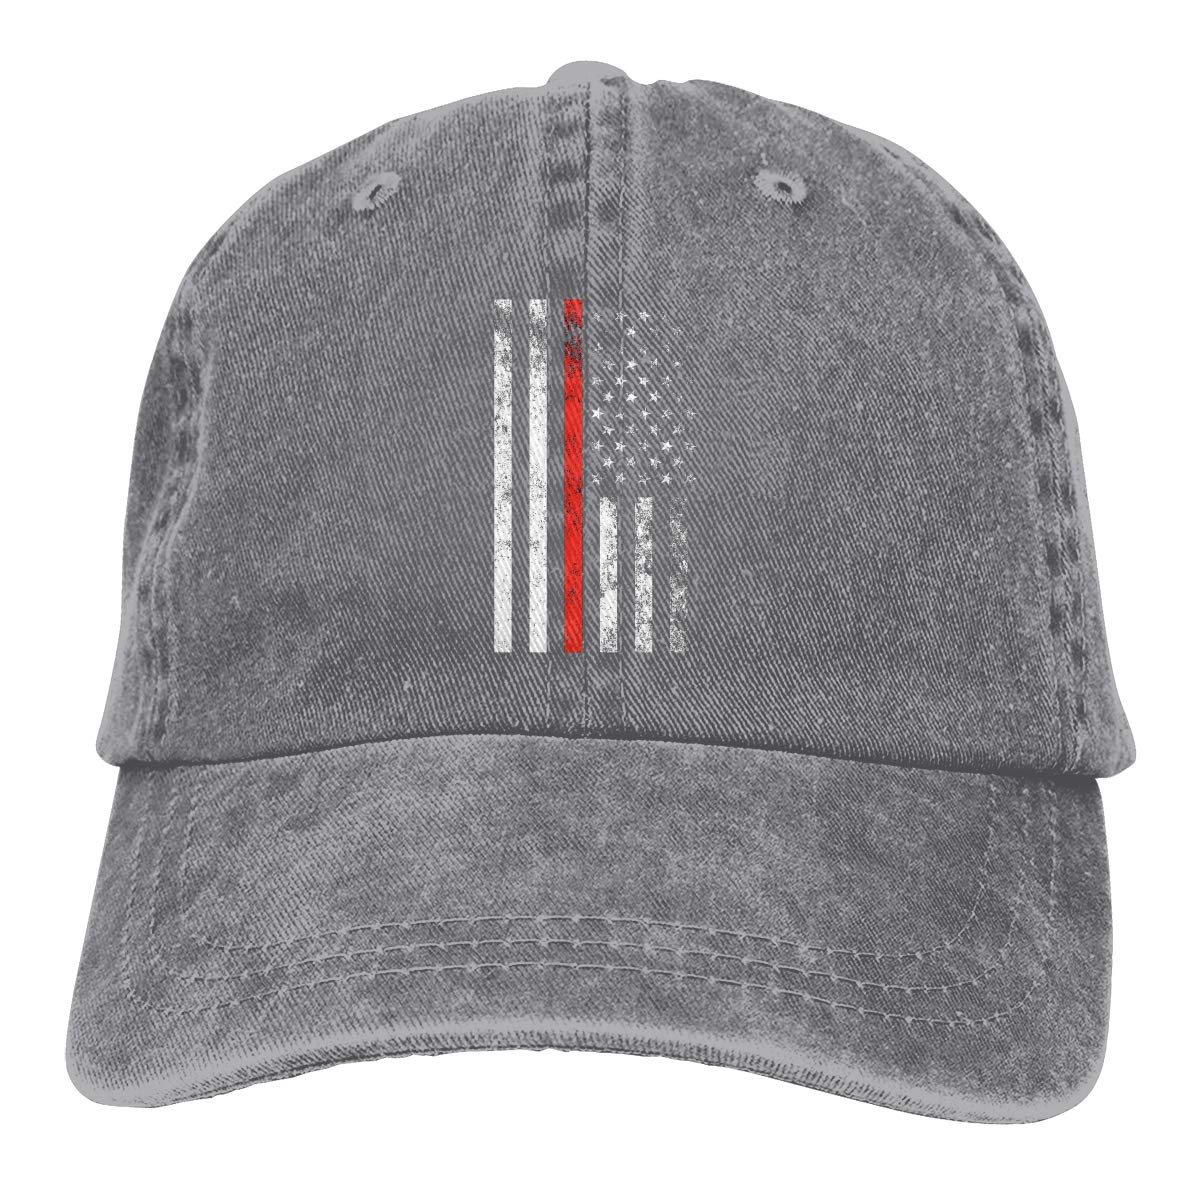 Firefighter Thin Red Line American Flag Fashion Adjustable Cowboy Cap Baseball Cap for Women and Men